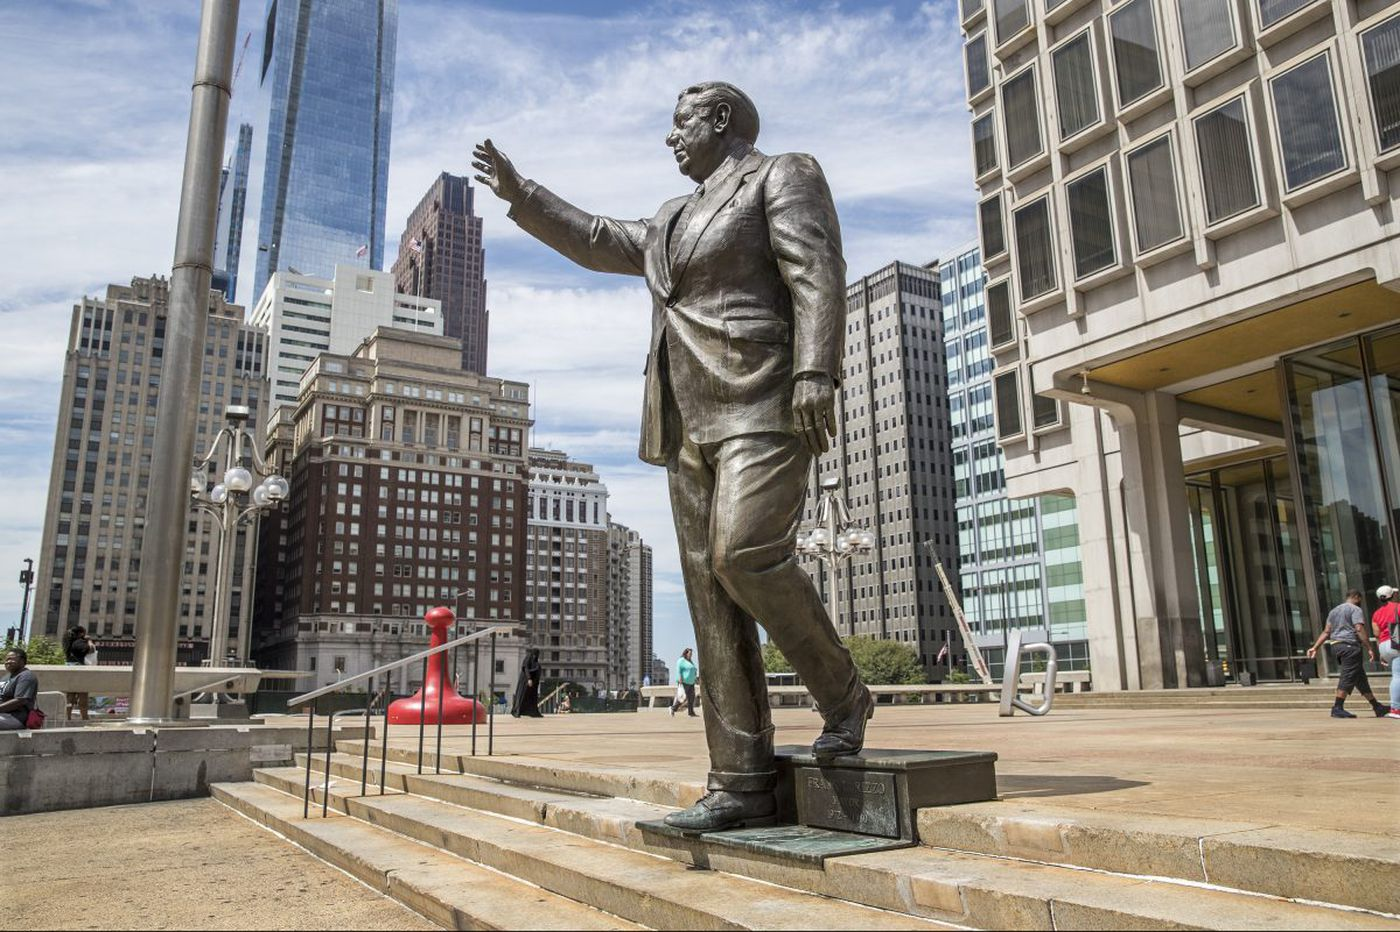 'Dress up the statue in drag' and other Rizzo statue suggestions submitted to the city